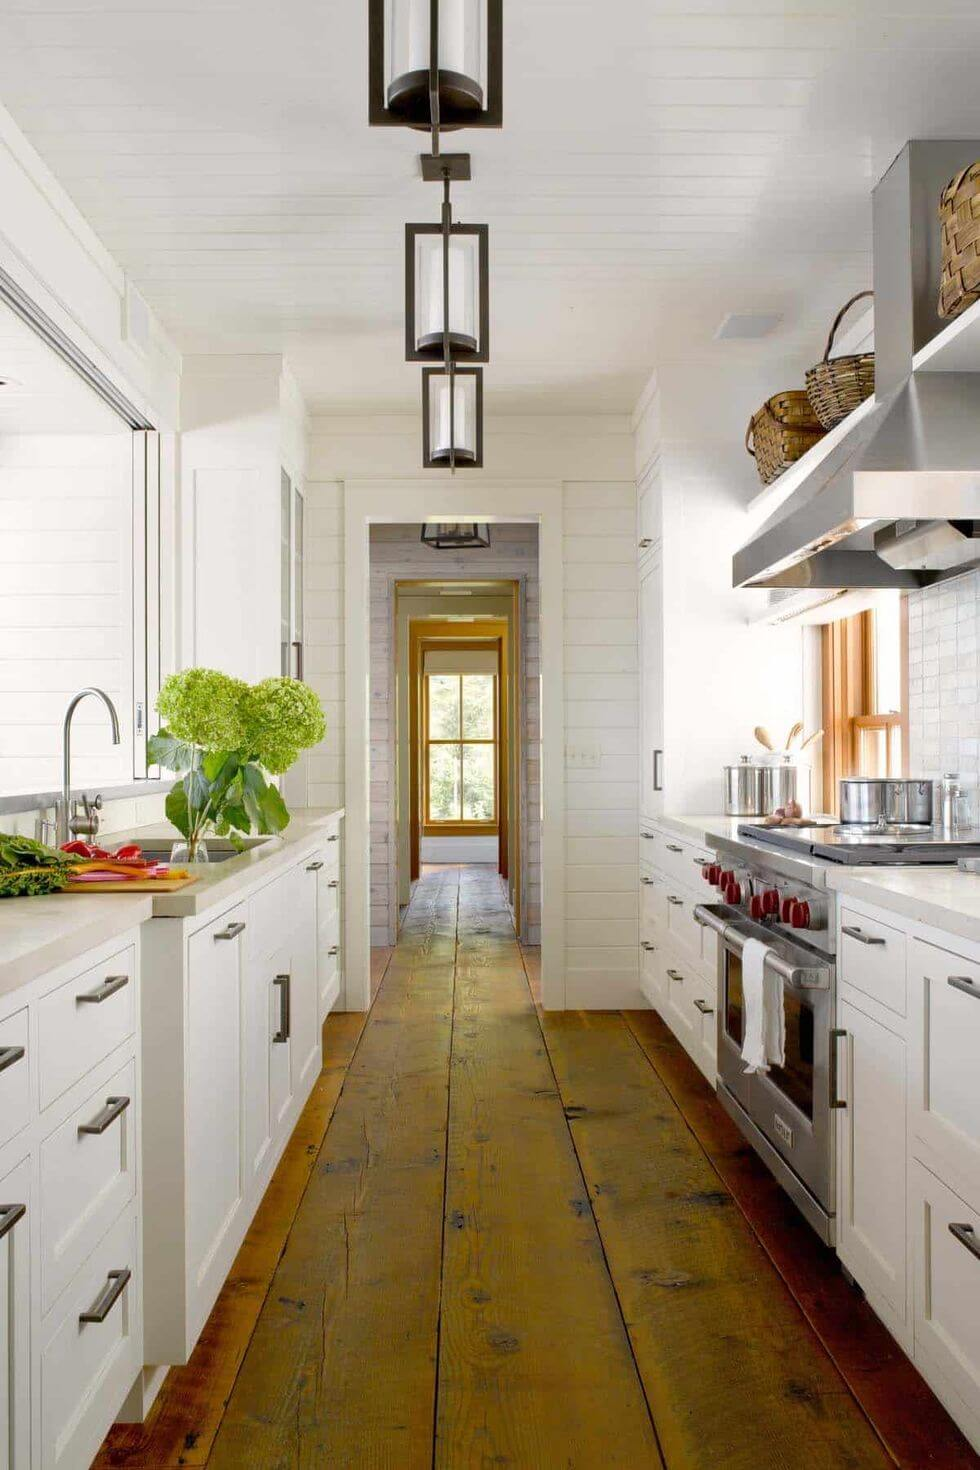 RUSTIC TRADITIONAL GALLEY KITCHEN DESIGN IDEAS